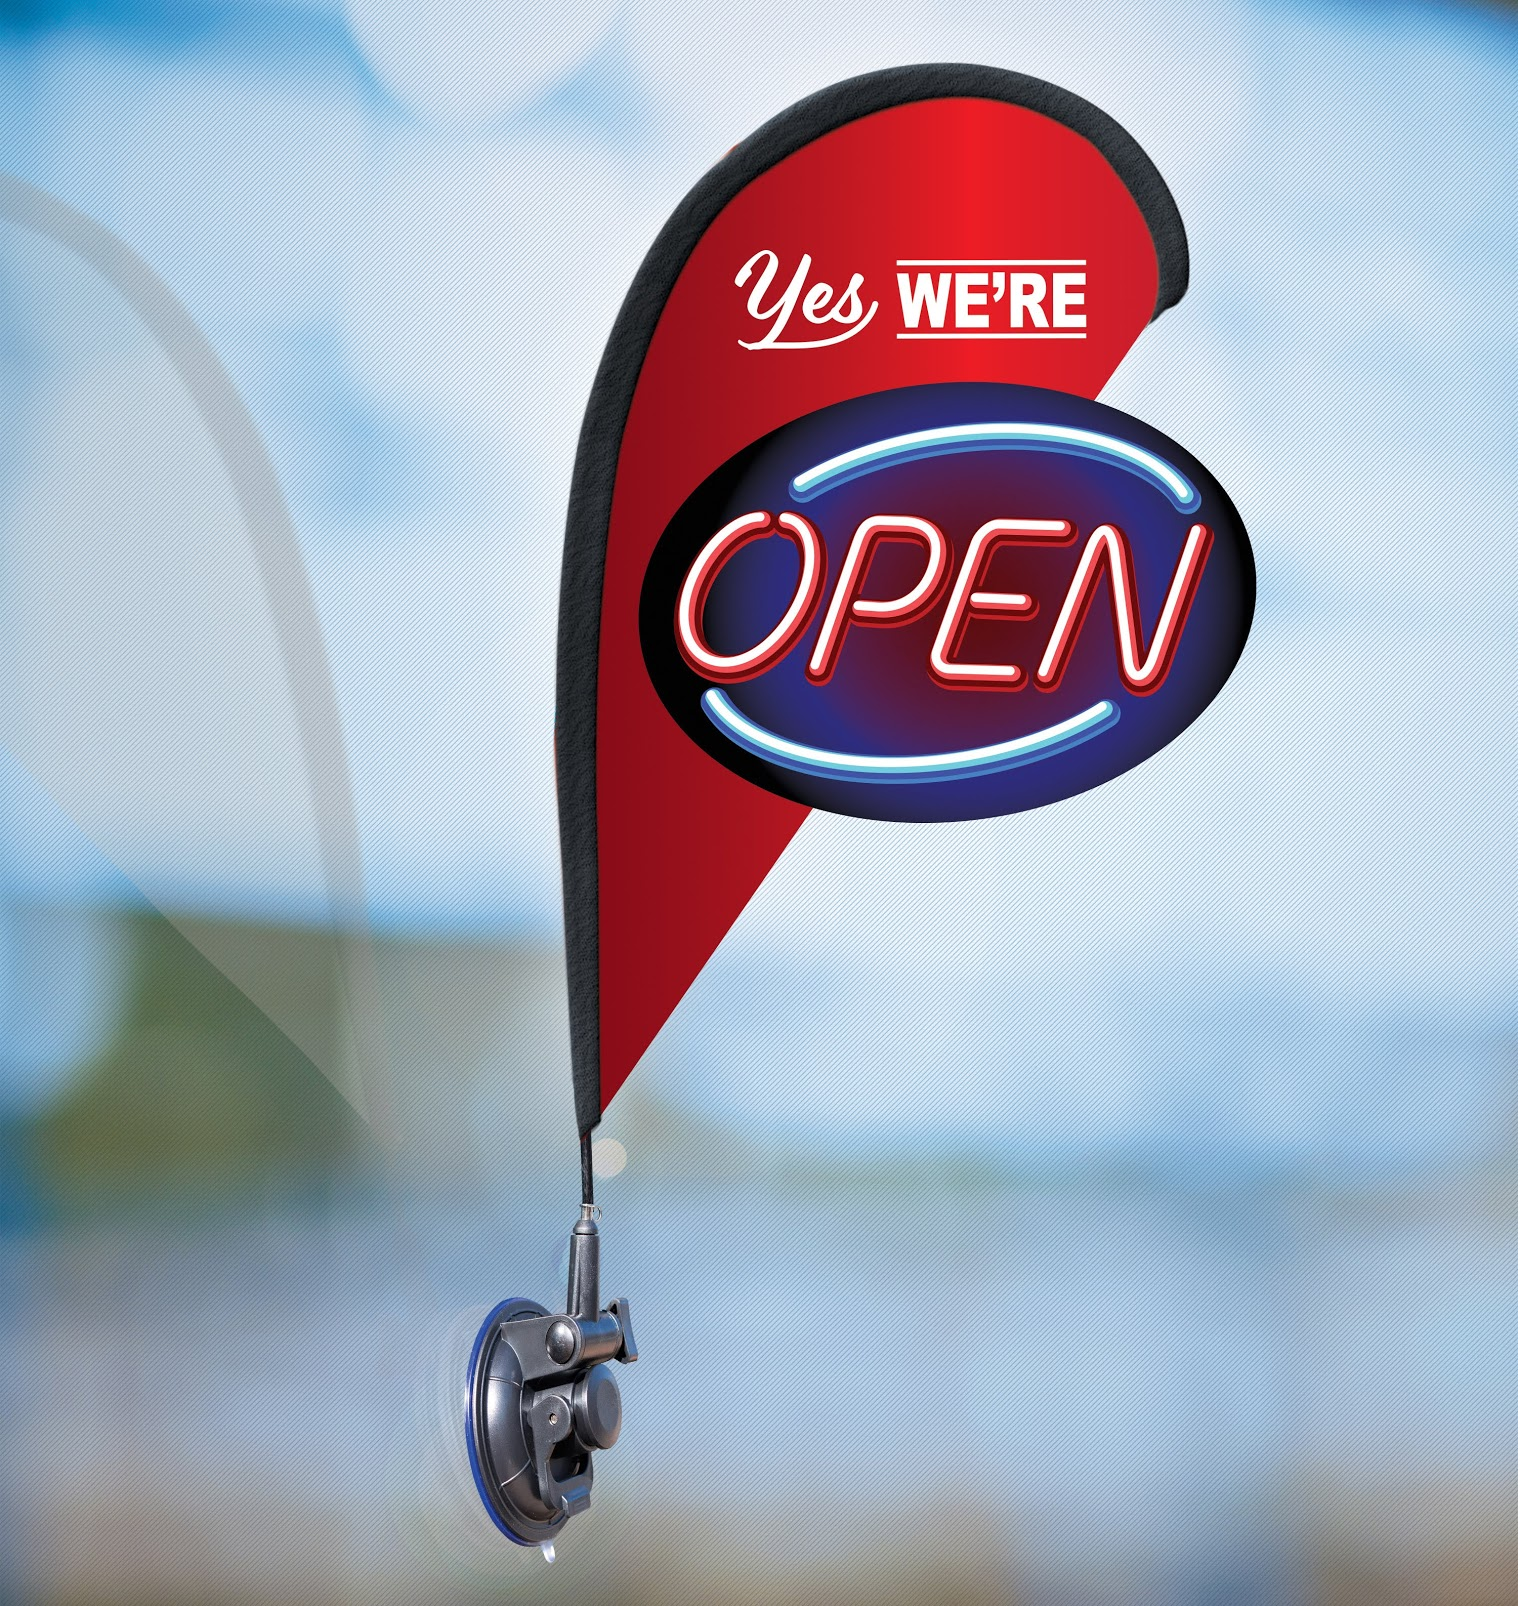 Indoor Outdoor Double Sided Window Flag for Business Sign Drive Thru Serving Essential Business and We are Open Small 3D Flag Kit for Small Business Pick Up Delivery